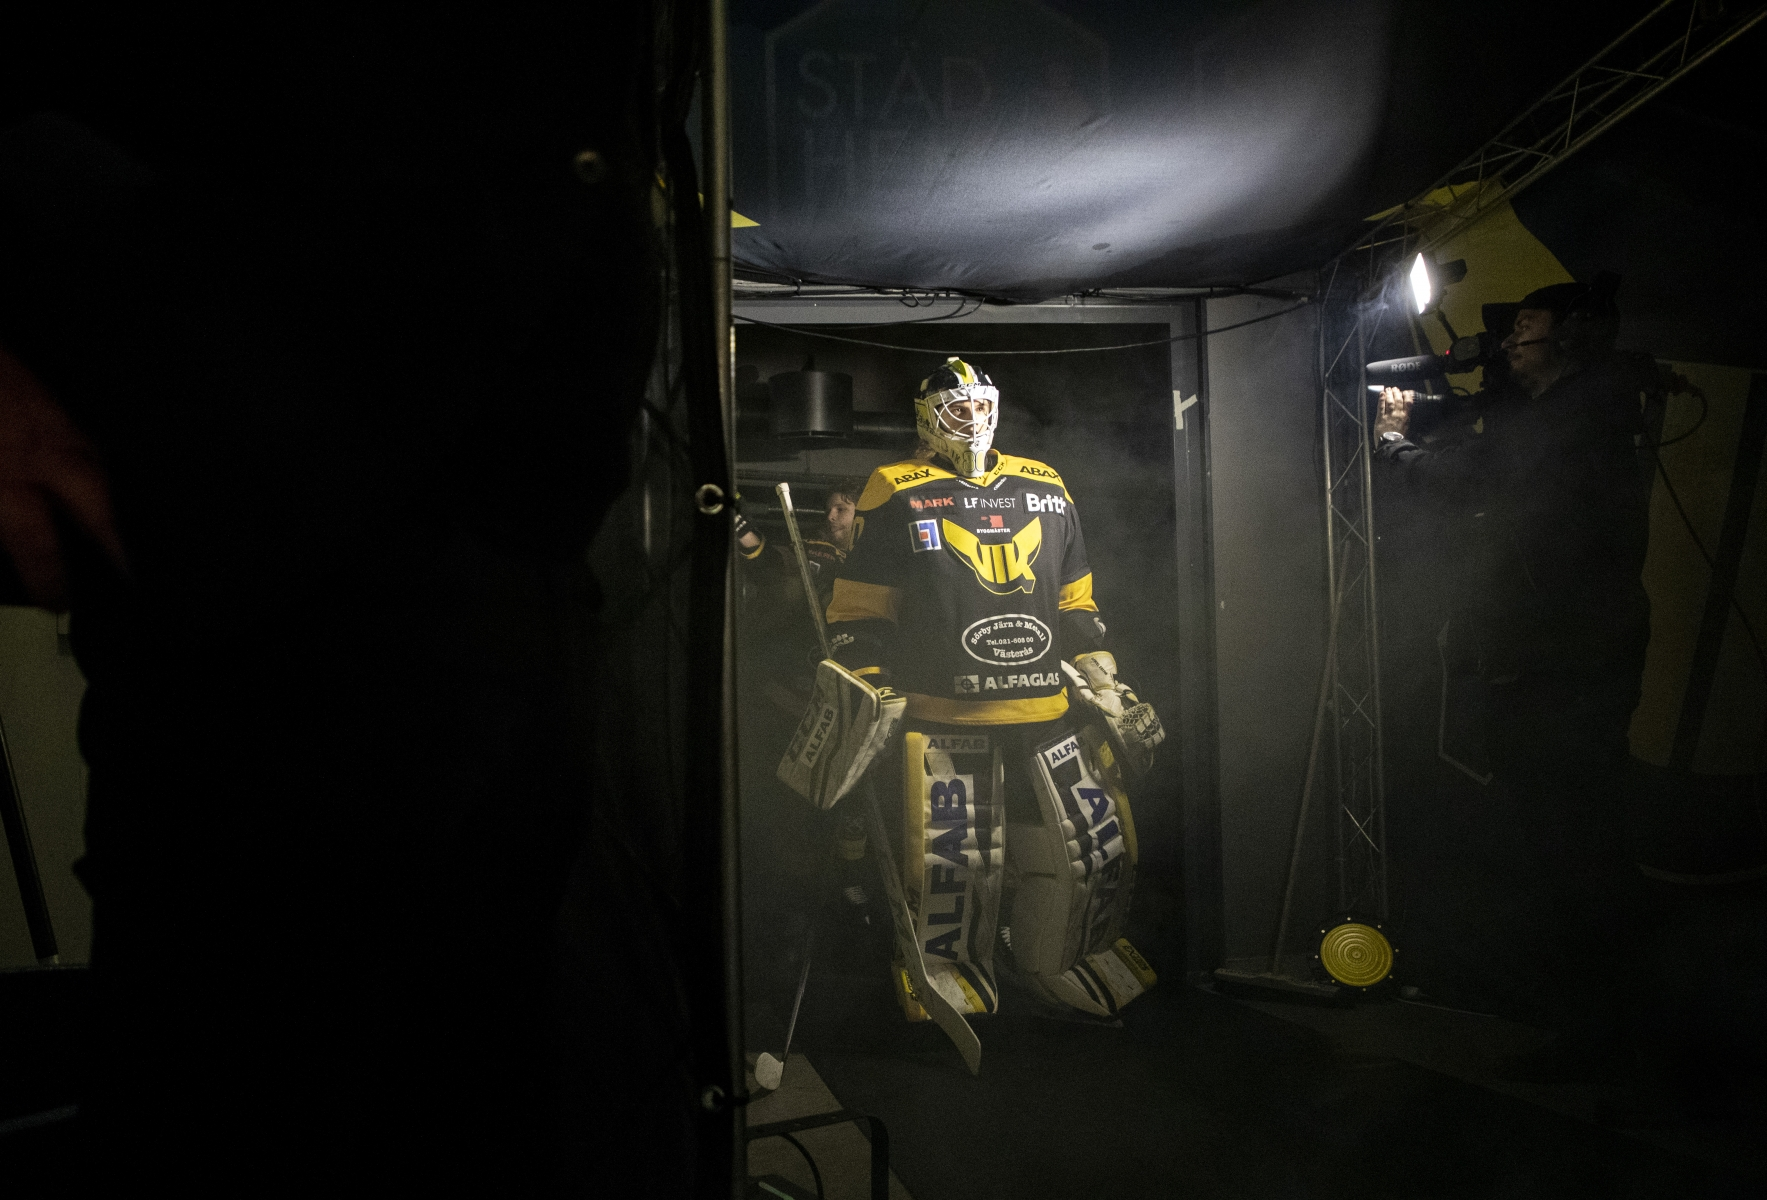 Goalkeeper Samuel Ersson in Västerås icehockey team 2019